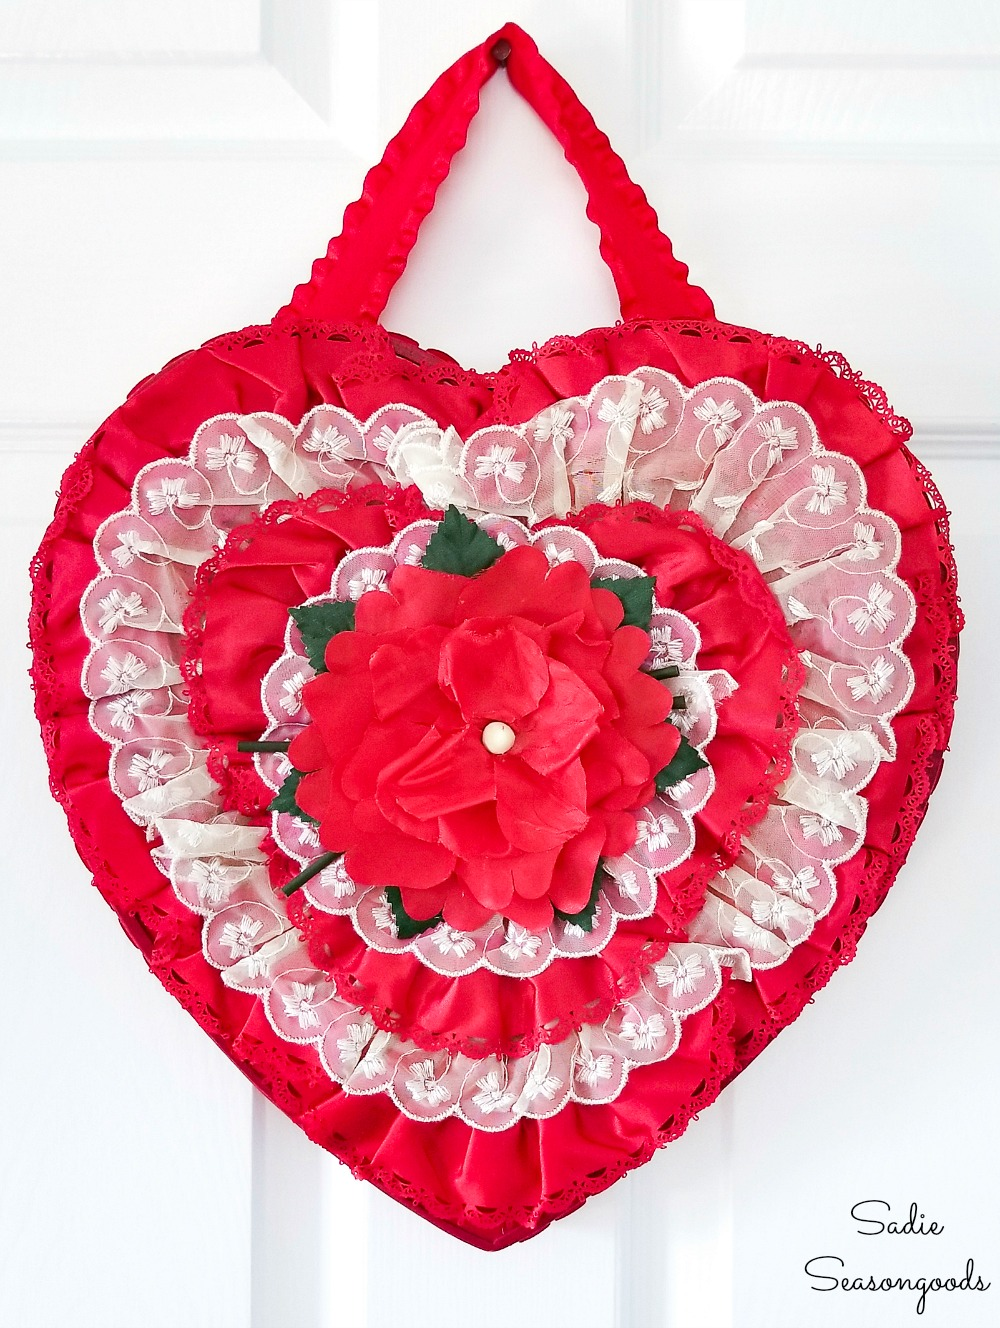 Chocolate heart box that has been upcycled into a heart shaped wreath for Valentine's Day home decor